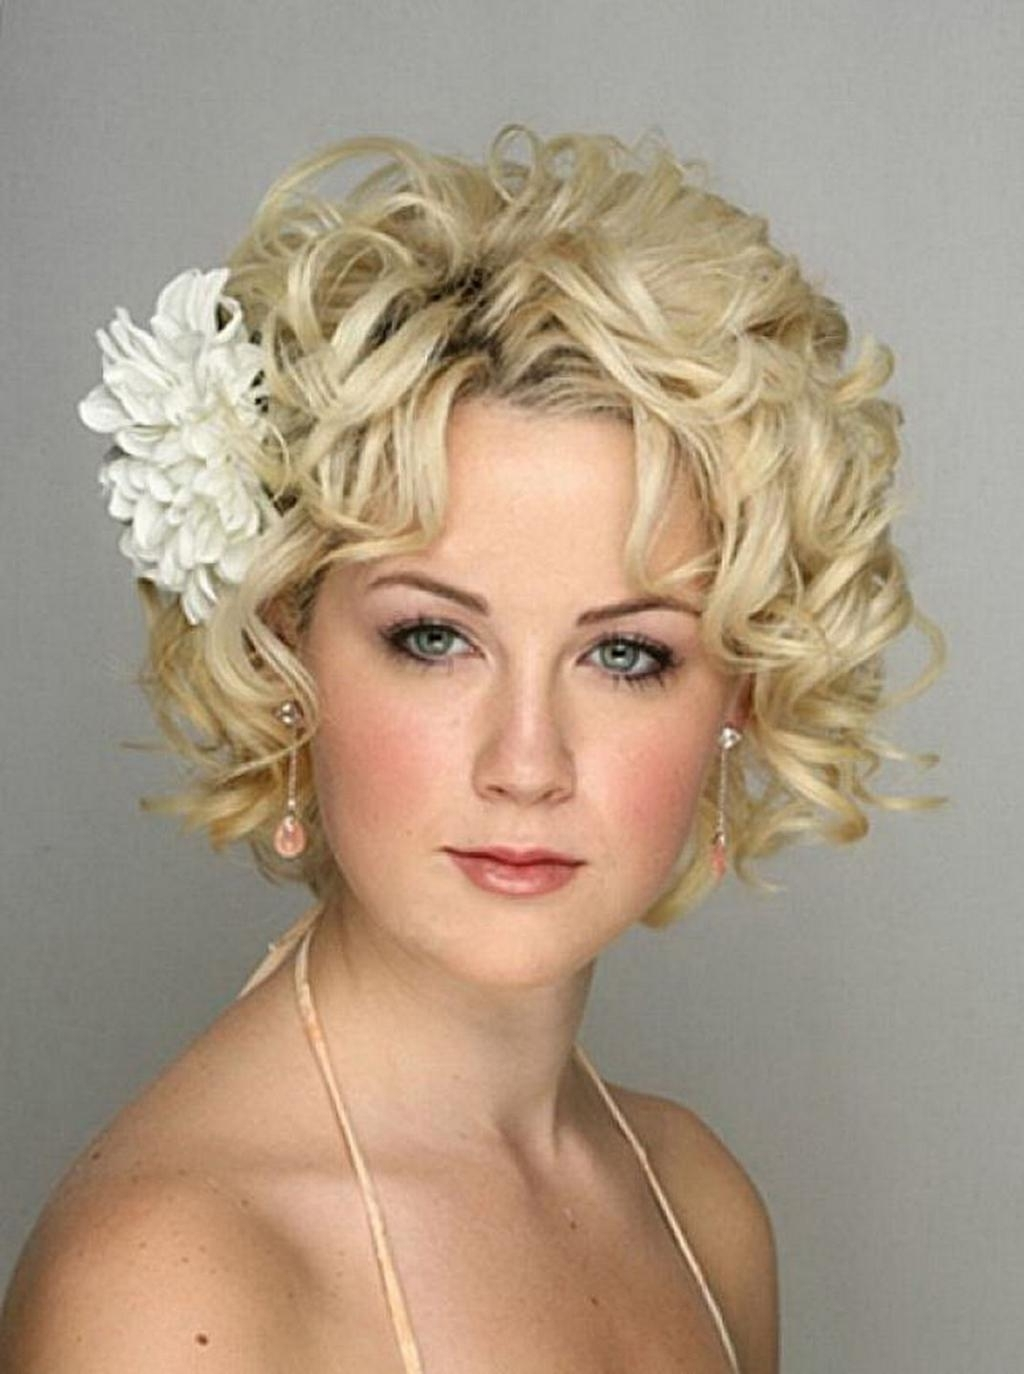 Newest Cute Wedding Guest Hairstyles For Short Hair In Wedding Hairstyles Ideas: Curly Ends Bob Short Hairstyles For (View 12 of 15)